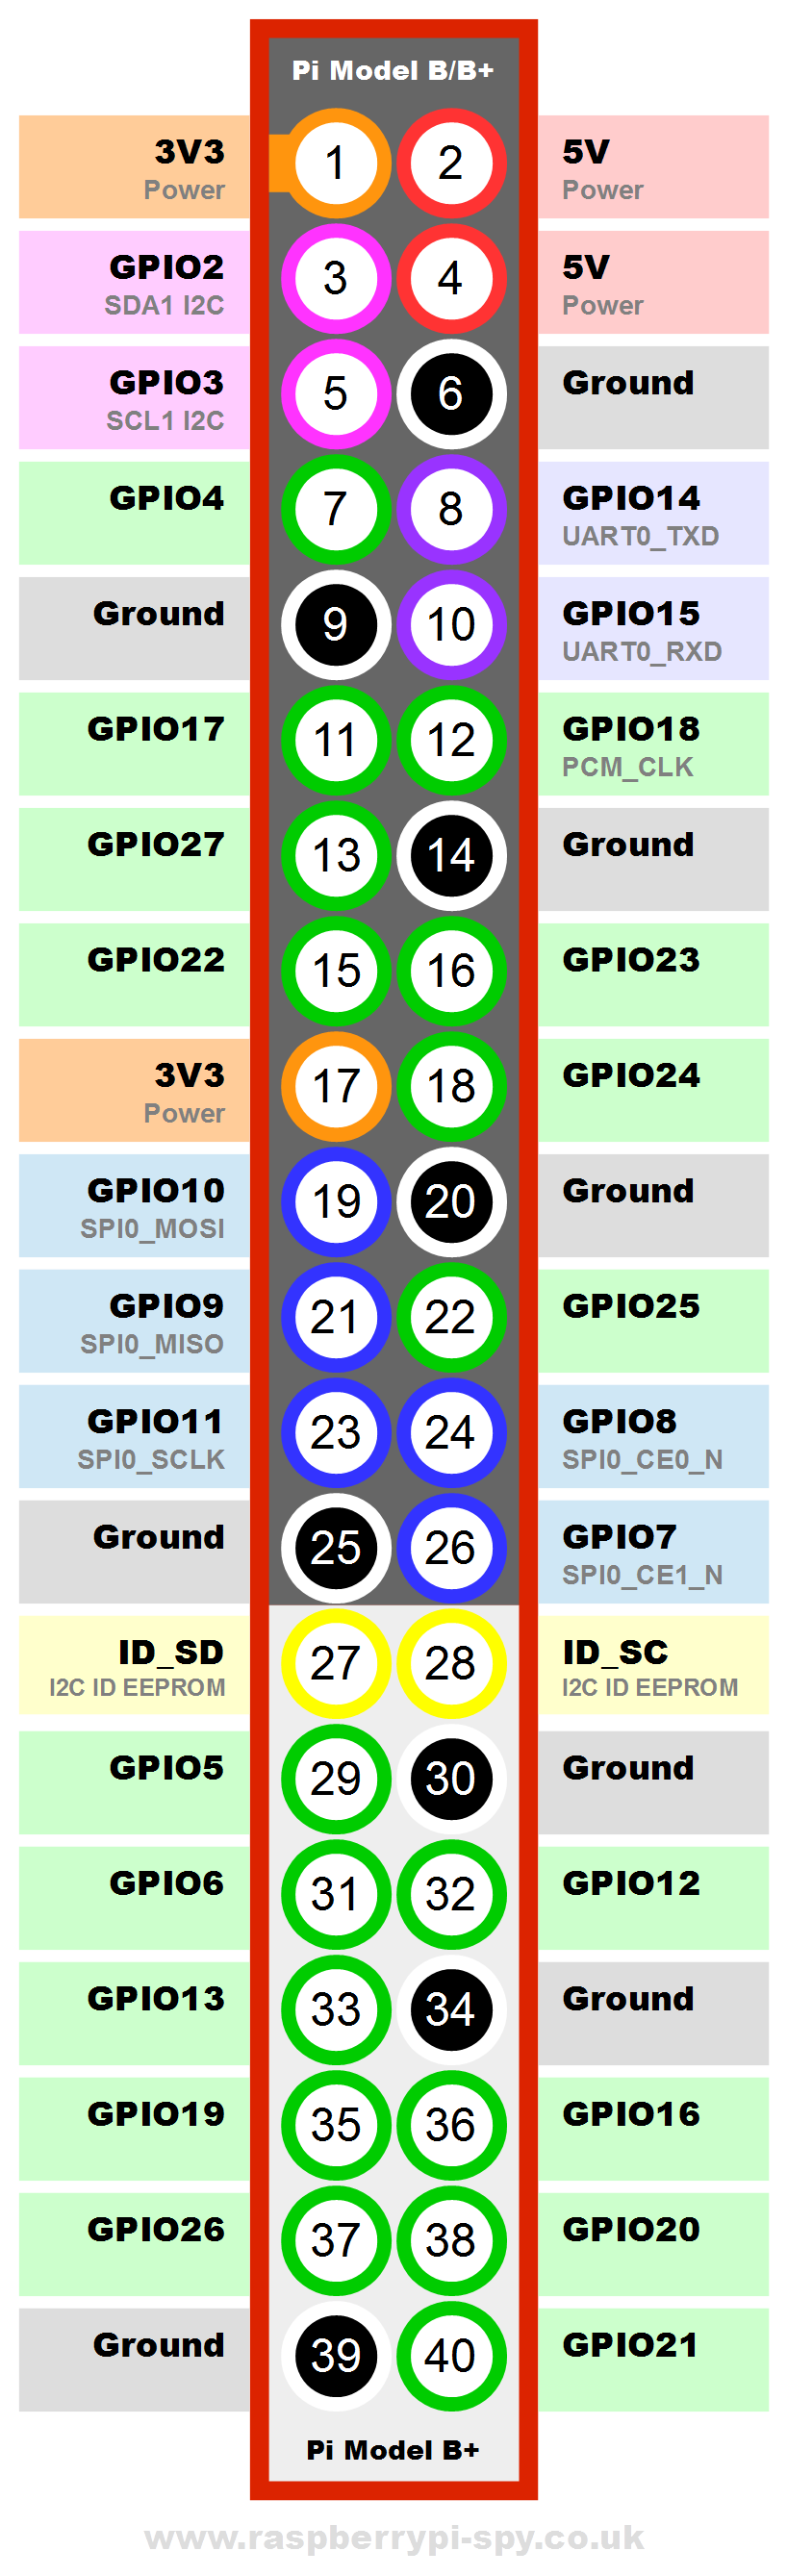 Raspberry Pi B+ GPIO Header Details And Pinout